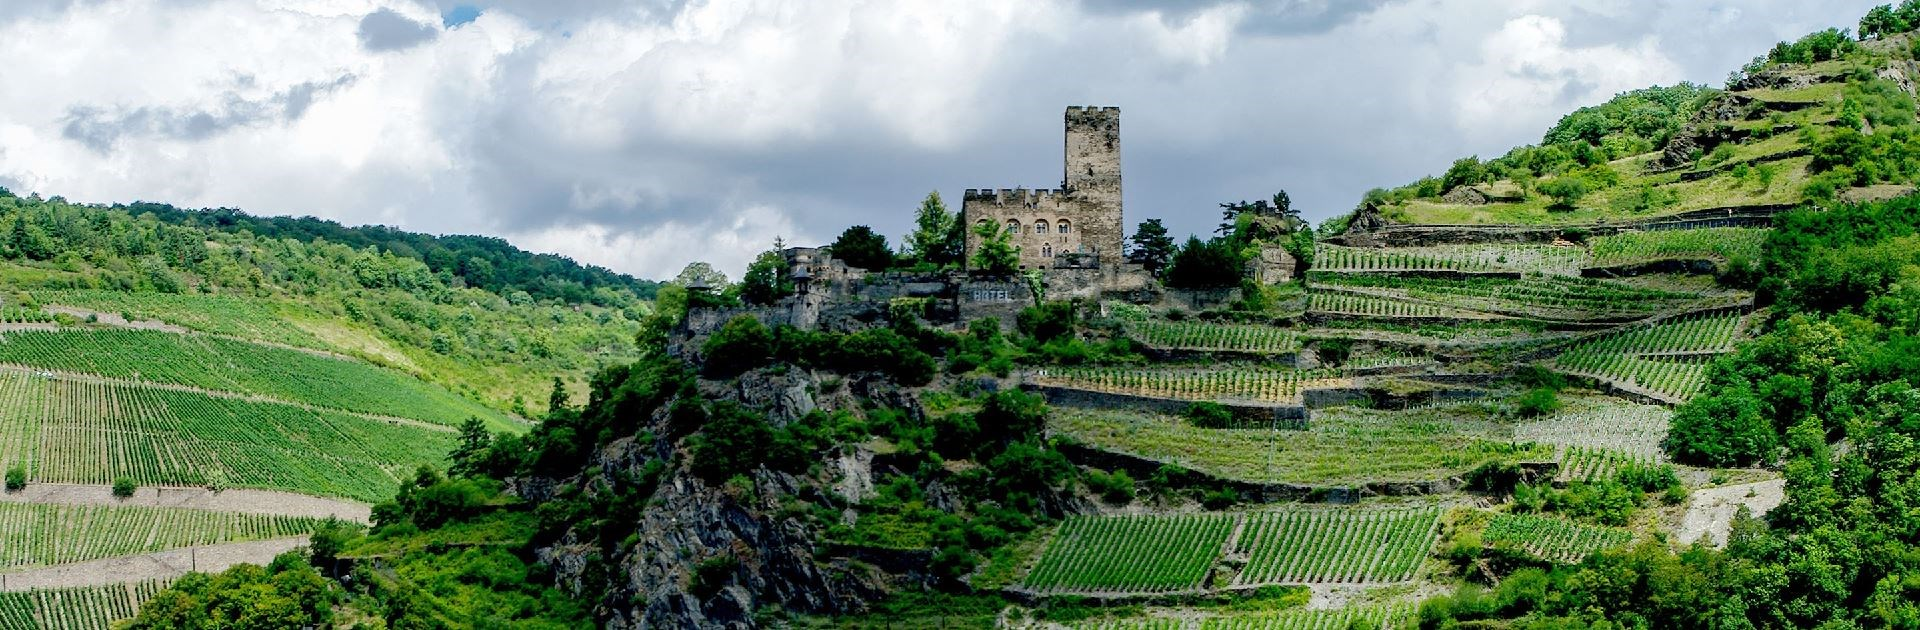 Captivating Rhine-Special Departure with a pre-cruise trip to the Slow Food Cheese Festival in Bra, Italy led by James Ayers.